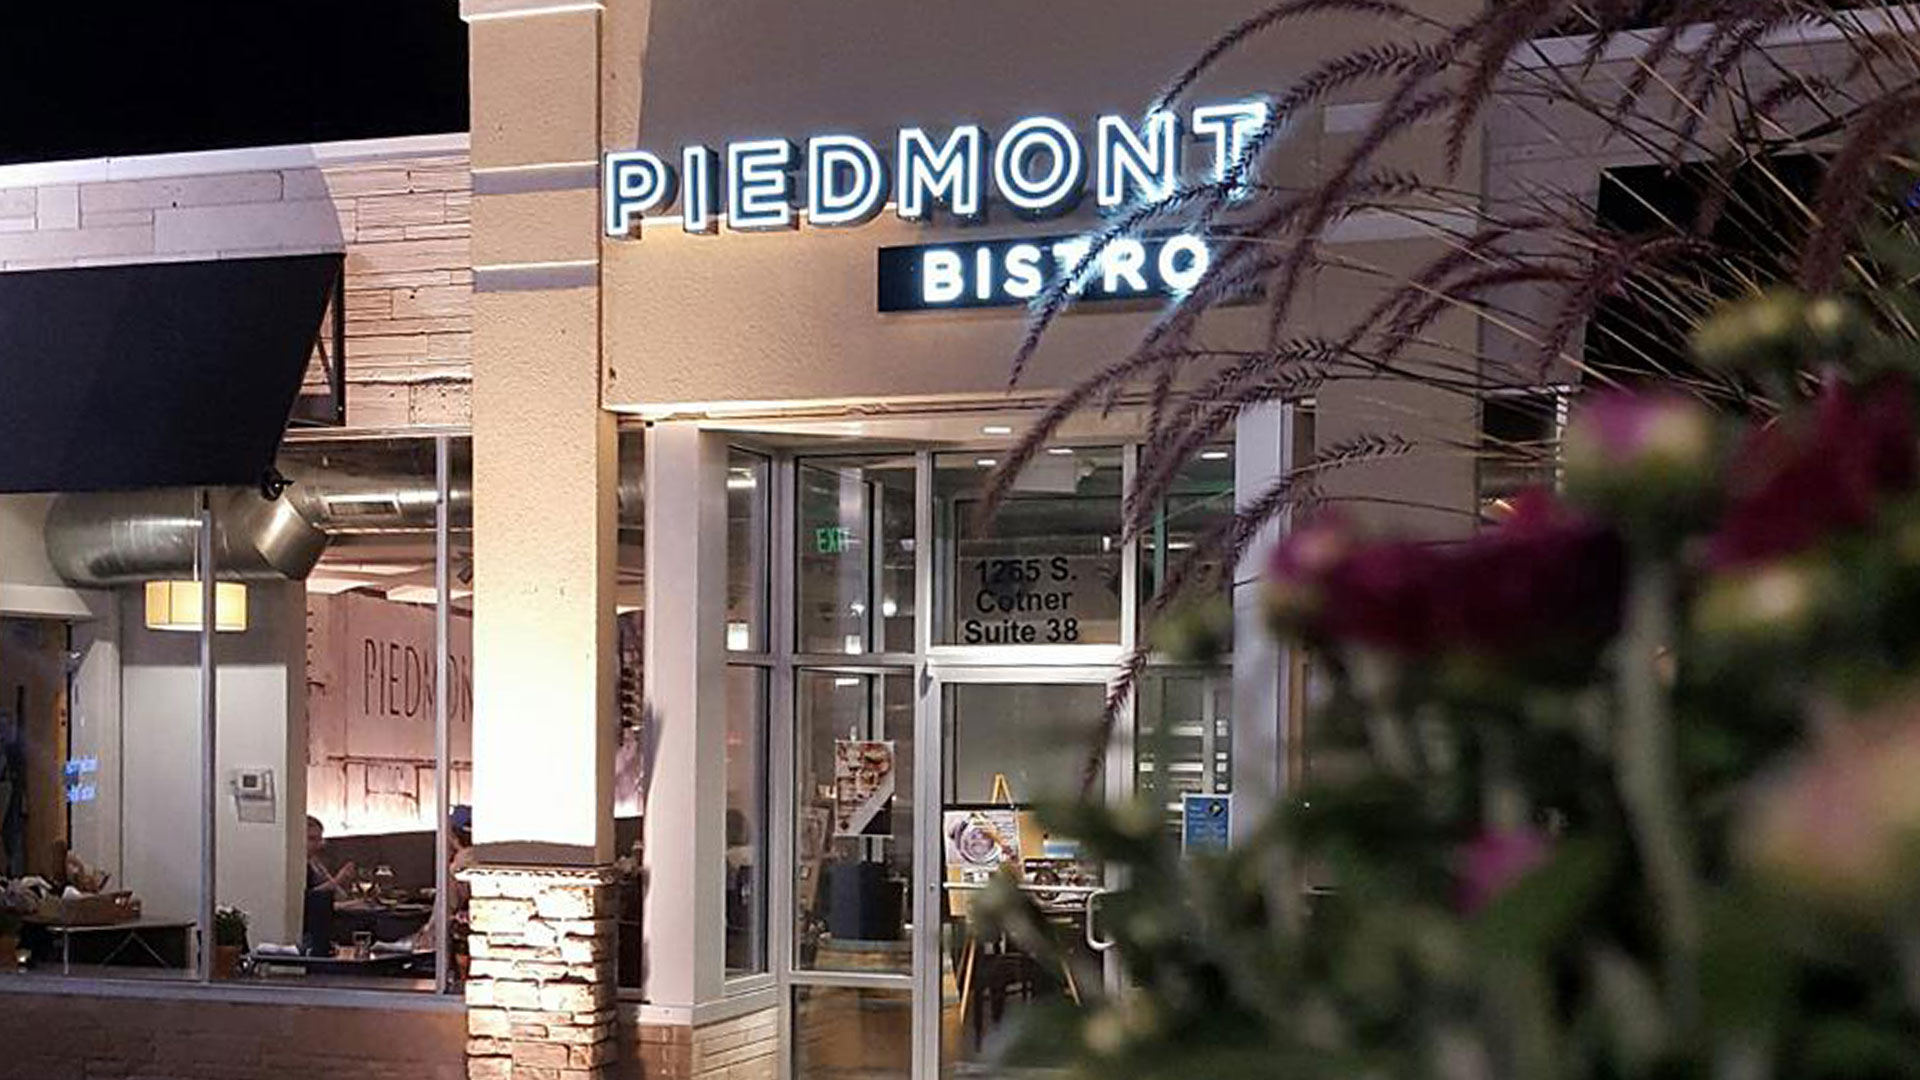 Building exterior of Piedmont Bistro by Venue in Lincoln, NE